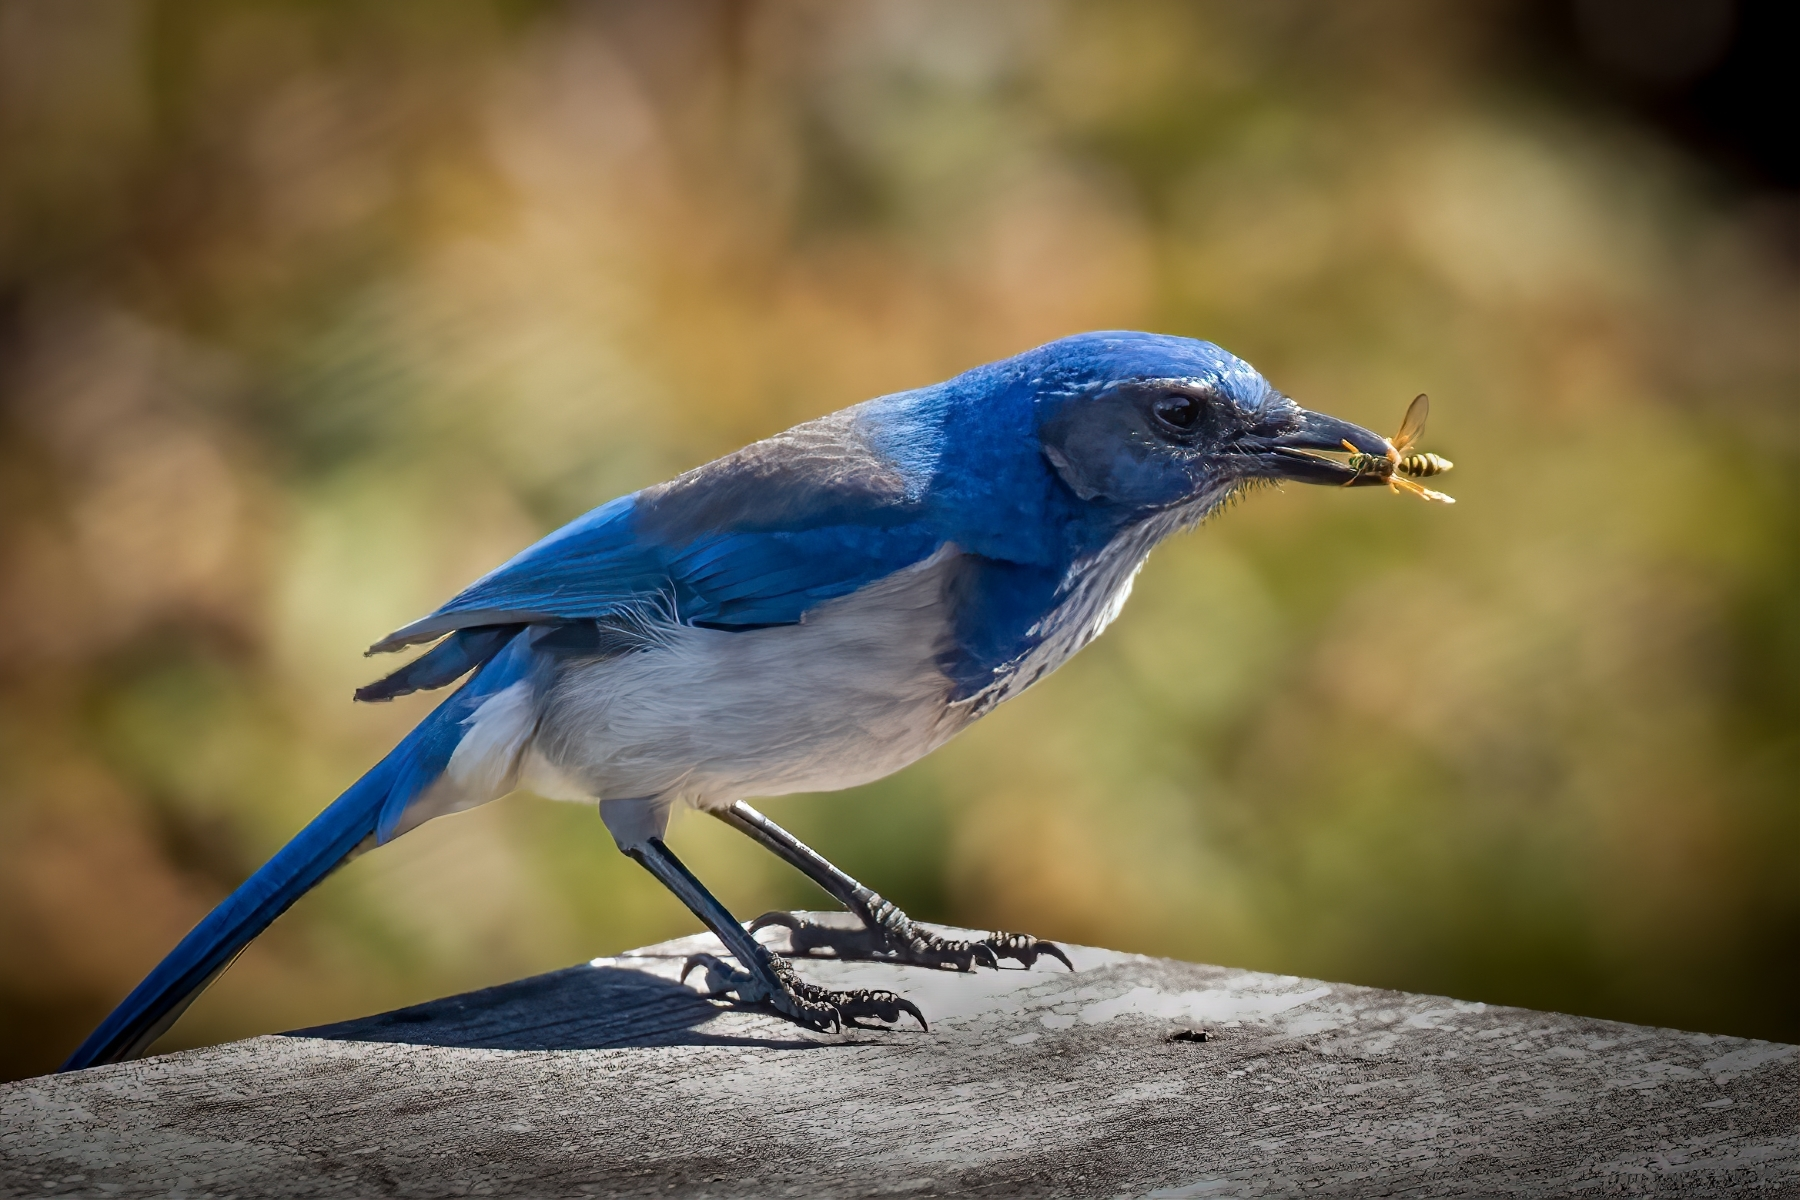 The-diet-of-the-Western-Scrub-Jay-includes-insects-fruit-nuts-and-berries.-In-this-case-a-wasp-while-perched-on-an-owl-box.-NB-1-Place-by-Michael-Carpenter-PE